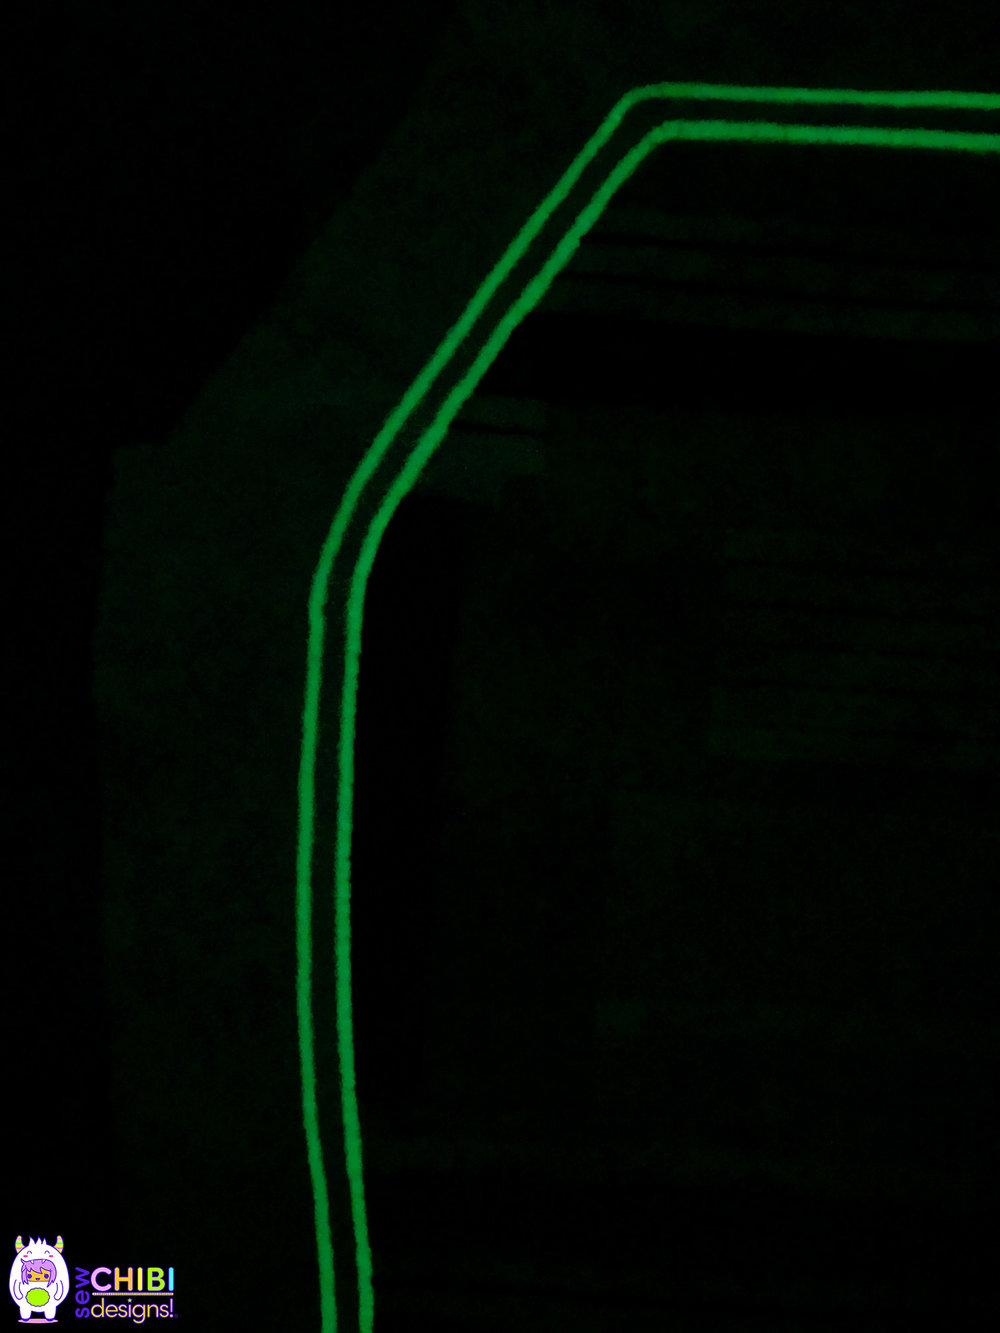 Glow in the Dark. - A close up of the glow-in-the-dark satin stitching using the specialty thread.